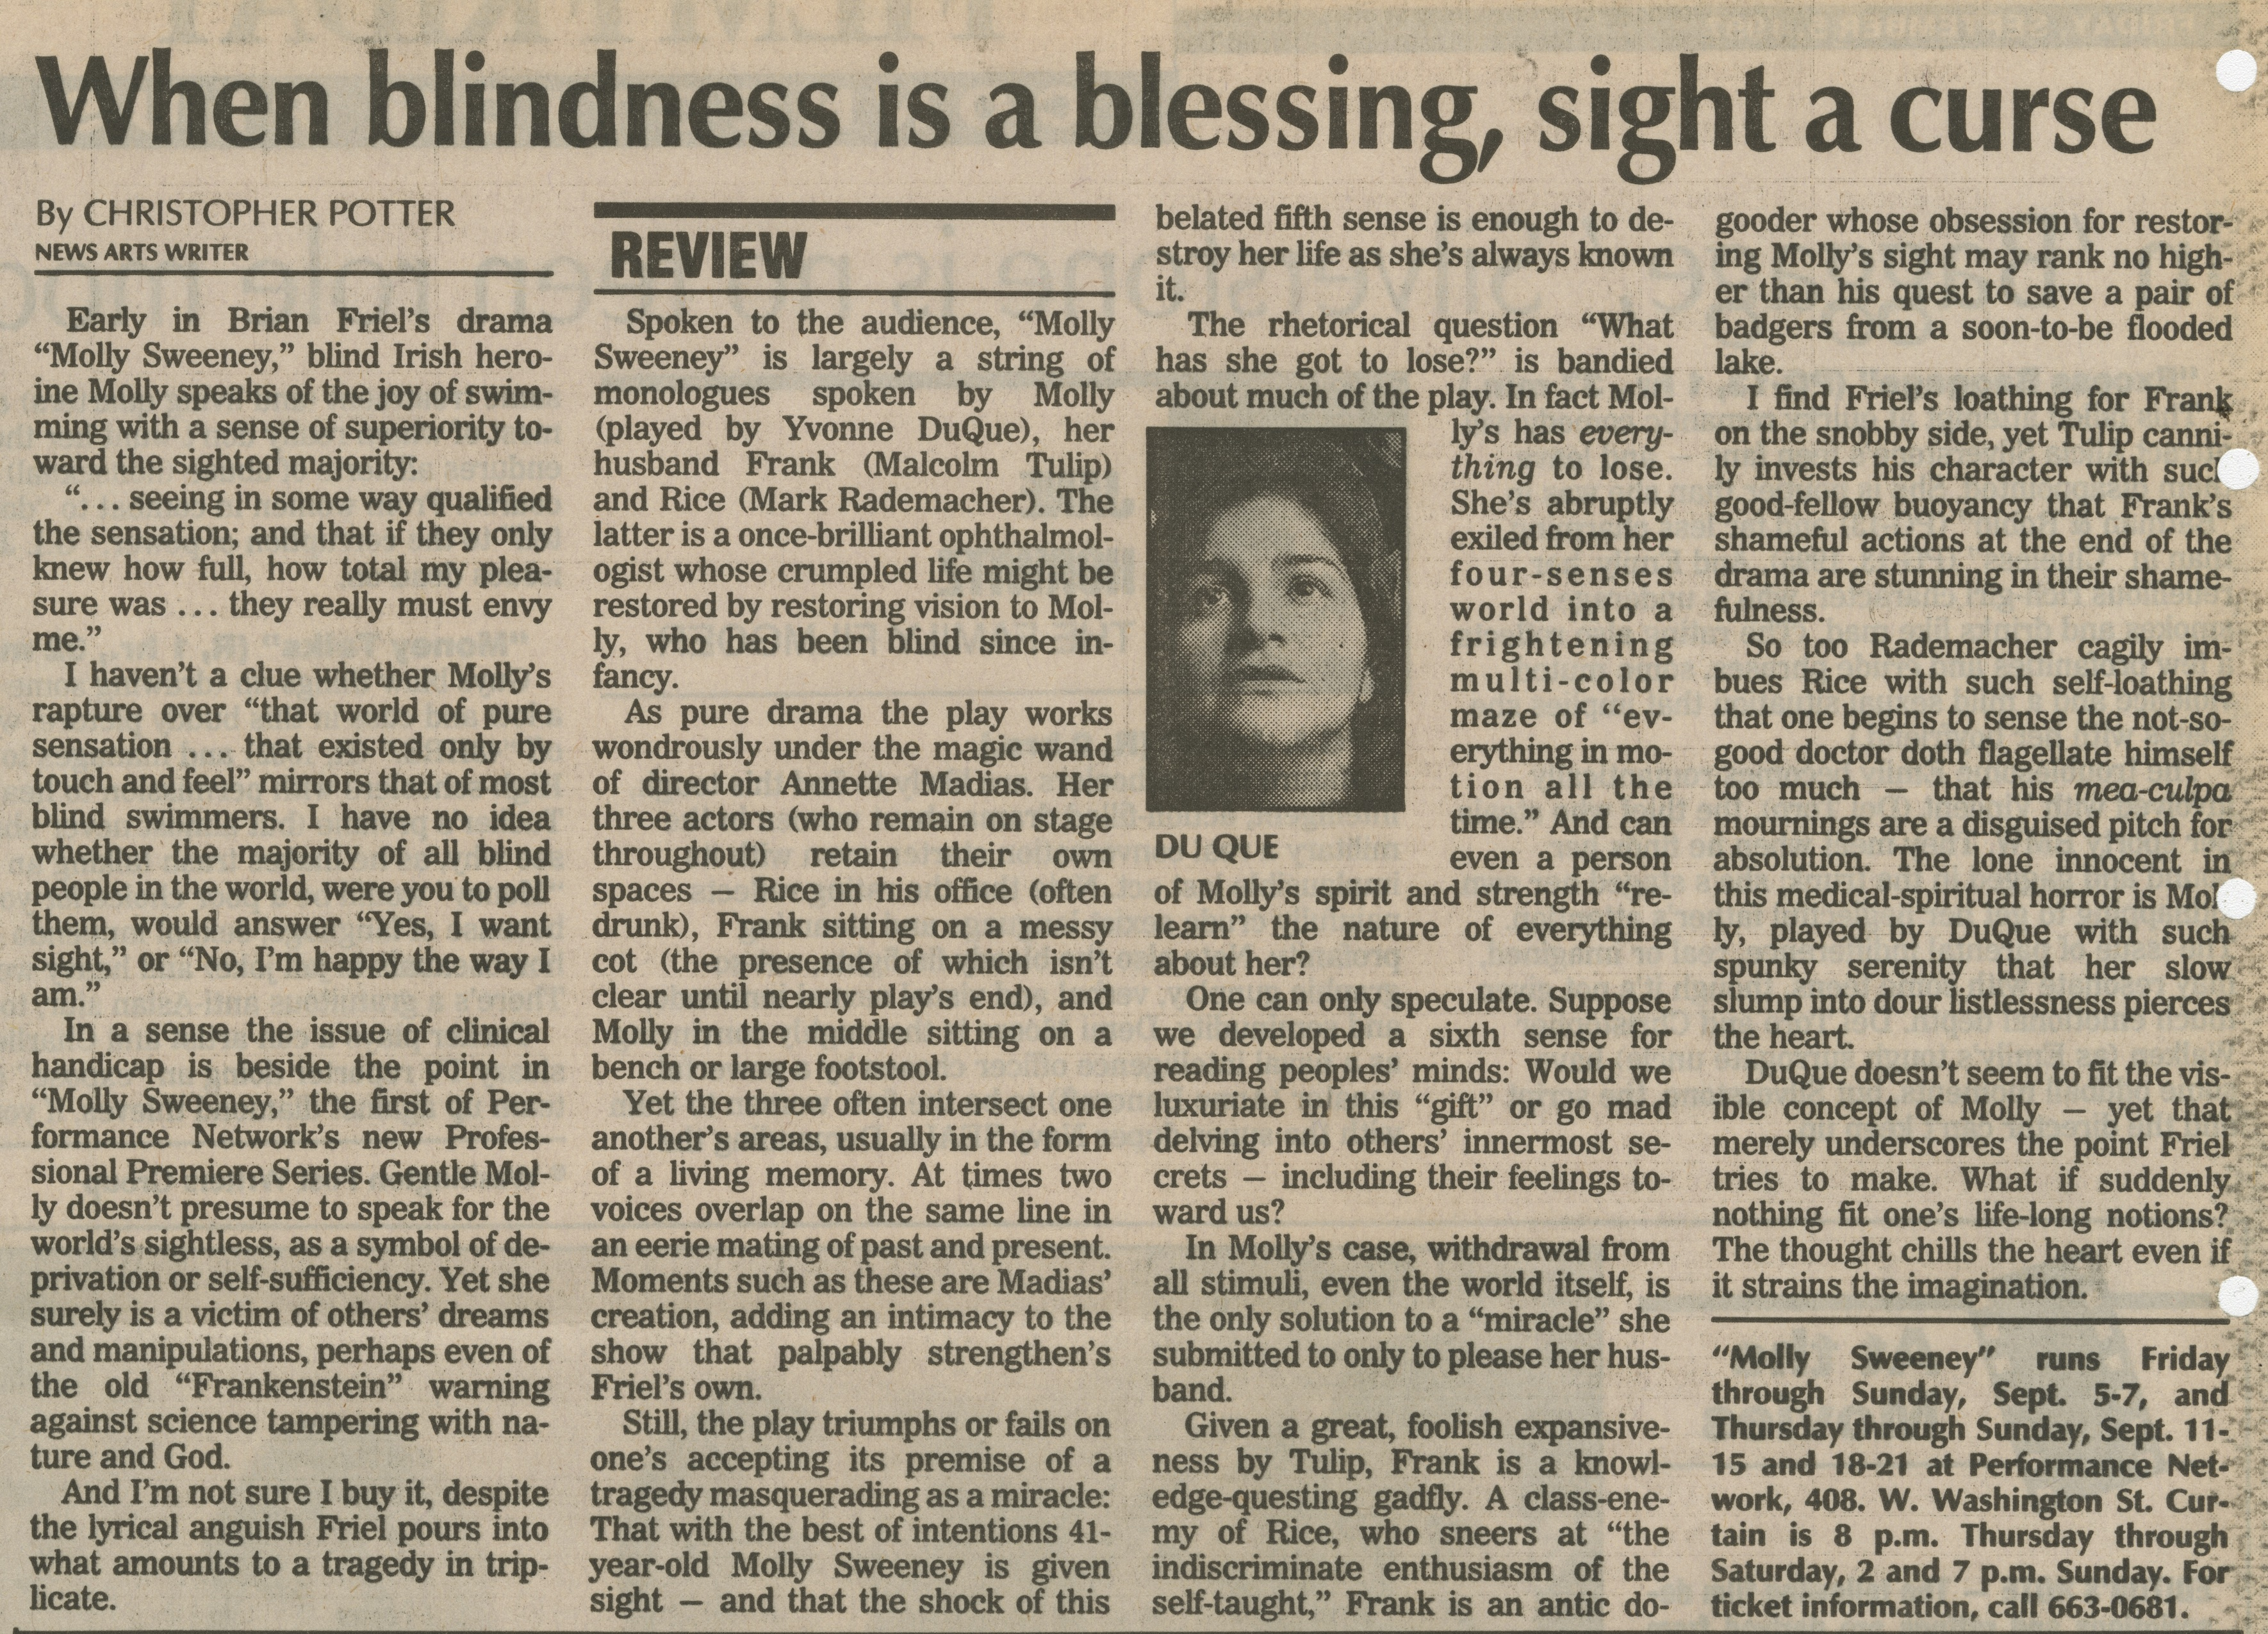 When blindness is a blessing, sight a curse image